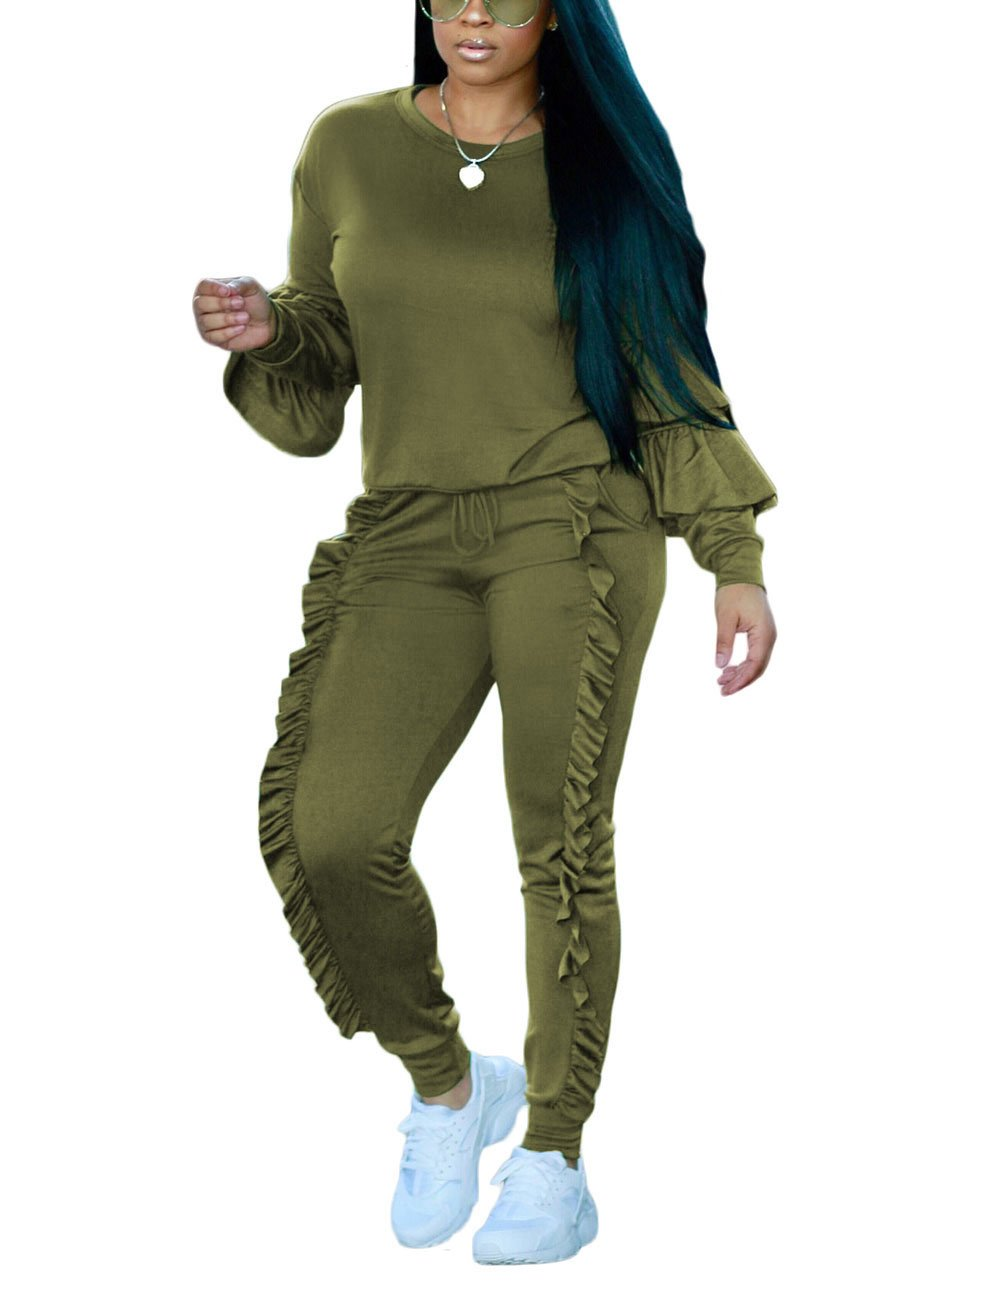 Autumn Long Sleeve Hoodie and Pants Two Piece Set Sweatsuits For Teen Girls,Army Green,Small/US6 by Akmipoem